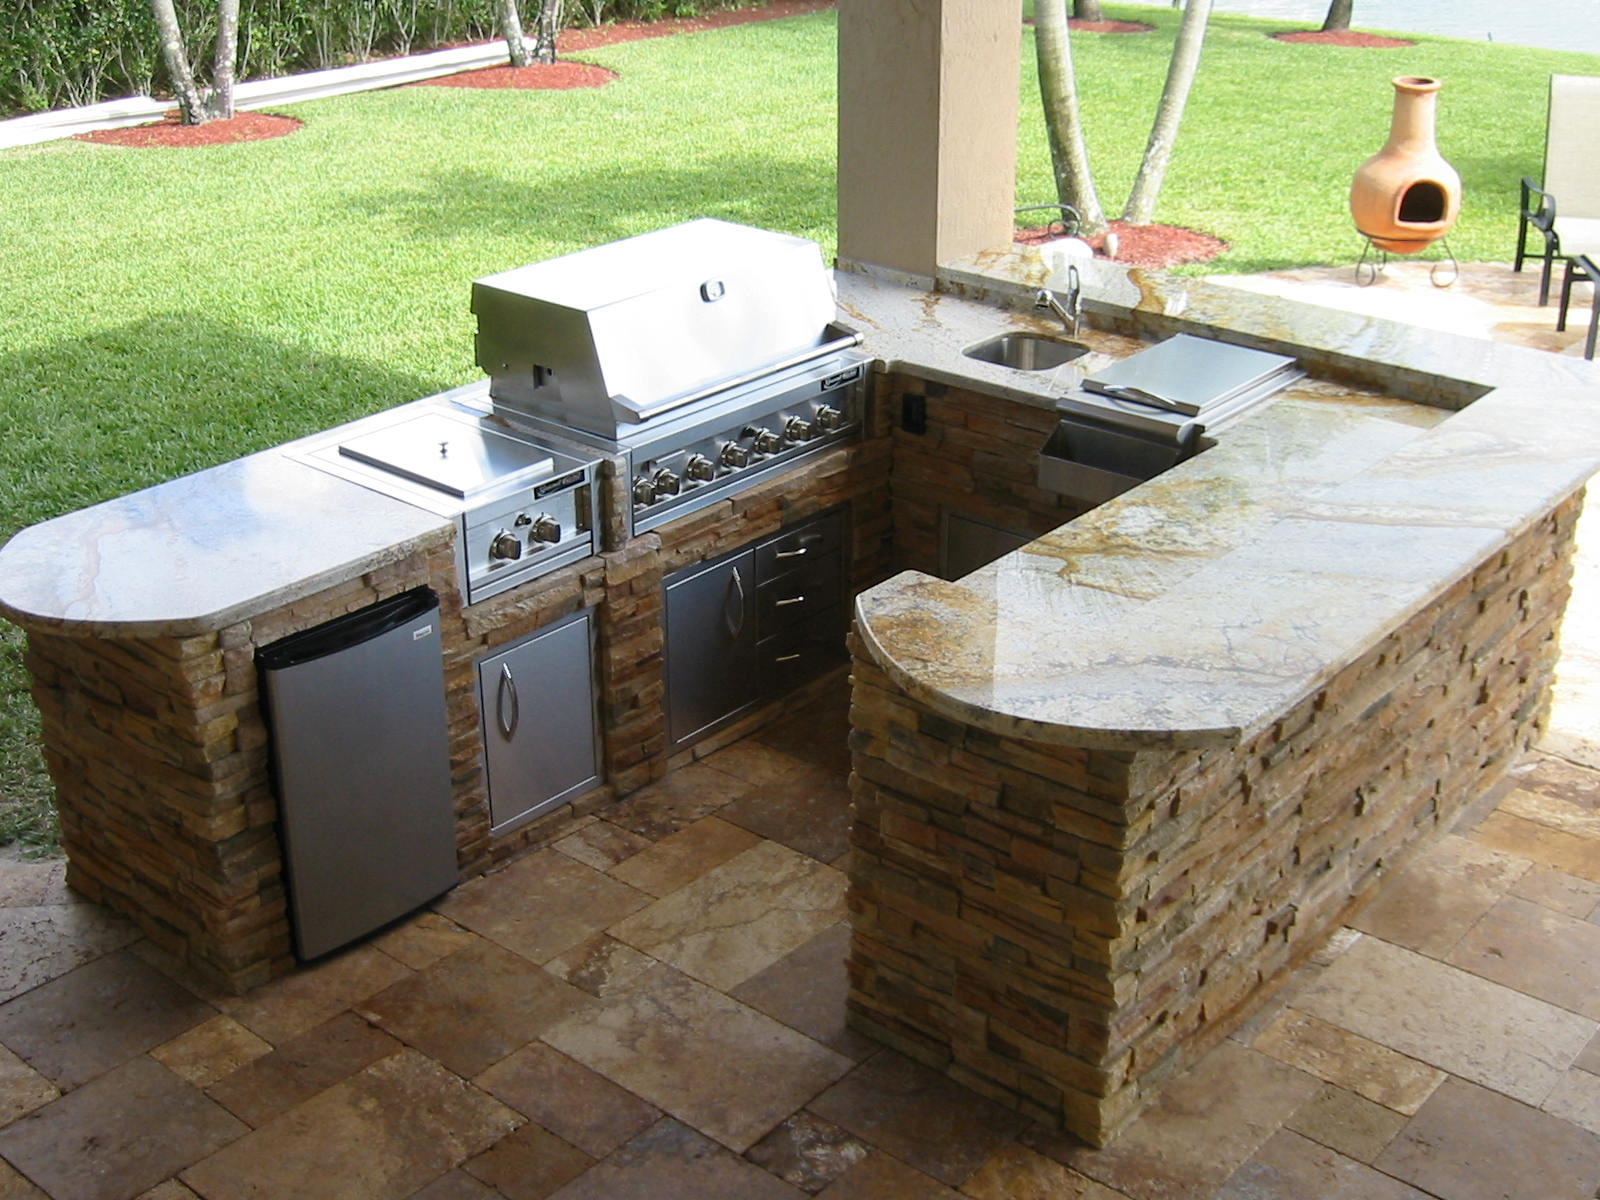 Outdoor kitchen depot outdoor kitchen building and design for Bbq grill designs and plans